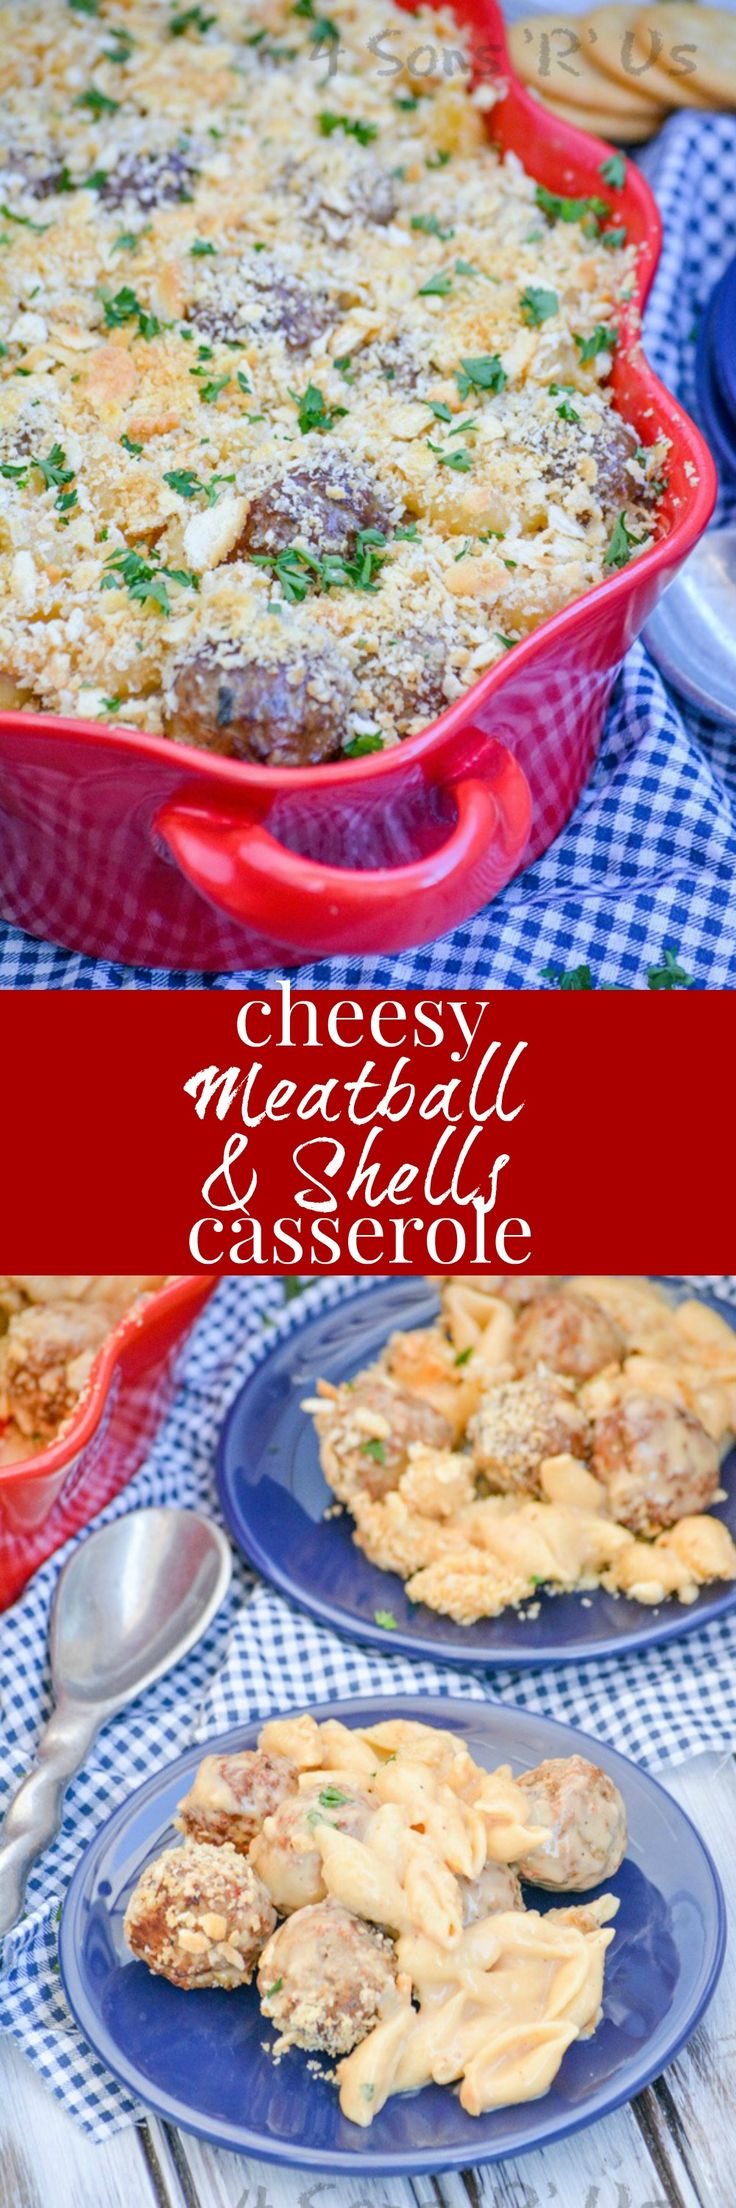 This shop has been compensated by Collective Bias, Inc. and its advertiser. All opinions are mine alone. #MeatballPerfection #CollectiveBias Angus beef meatballs and shell shaped pasta are baked in a rich cheese sauce for an epic flavor mash up. Cheesy Meatball & Shells Casserole is a whole new take on[Read more]